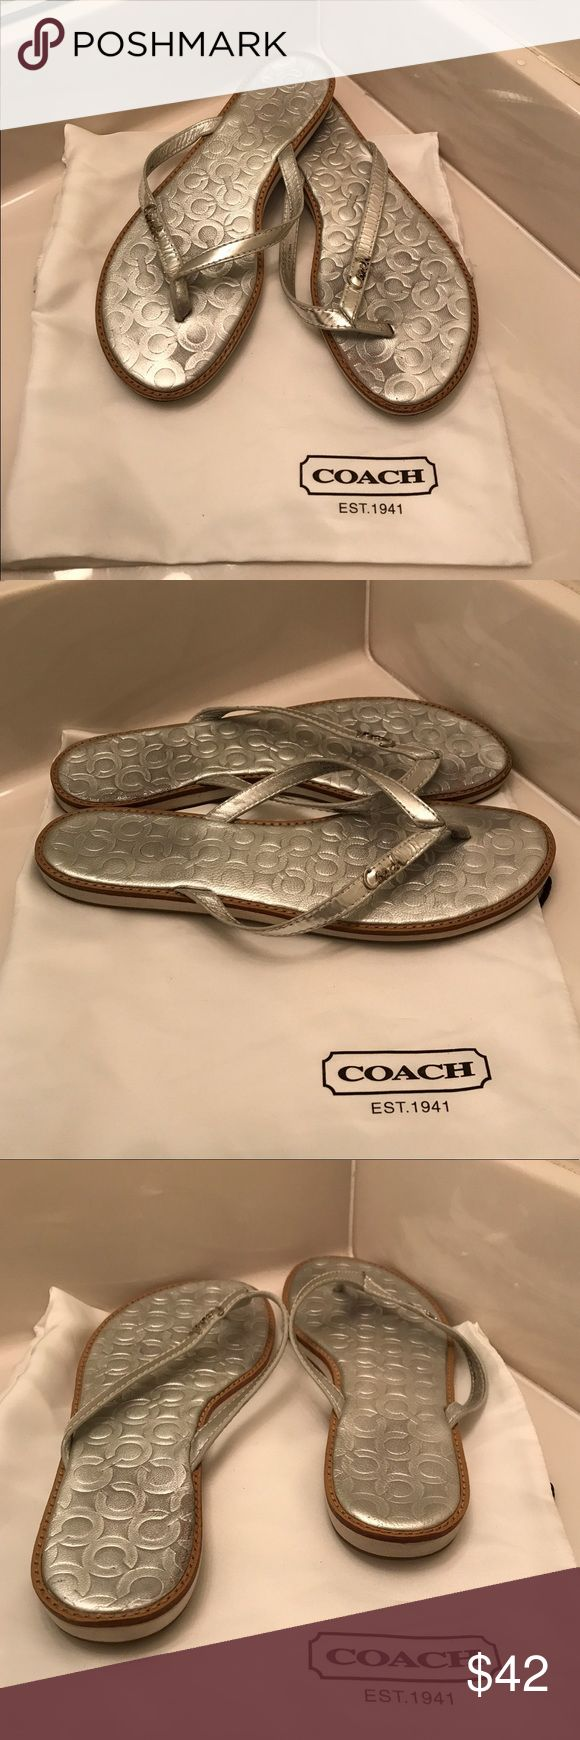 Coach Authentic Devlynn Silver Metallic Flip Lops Coach Authentic Devlynn Silver Metallic Flip Lops Size 7. This adorable flip flop is perfect to wear with almost anything. GUC light wear. 🚫🚫Trades, paypal, any questions in the comments regarding price please use the offer button or they will be ignored🚫🚫 Coach Shoes Sandals